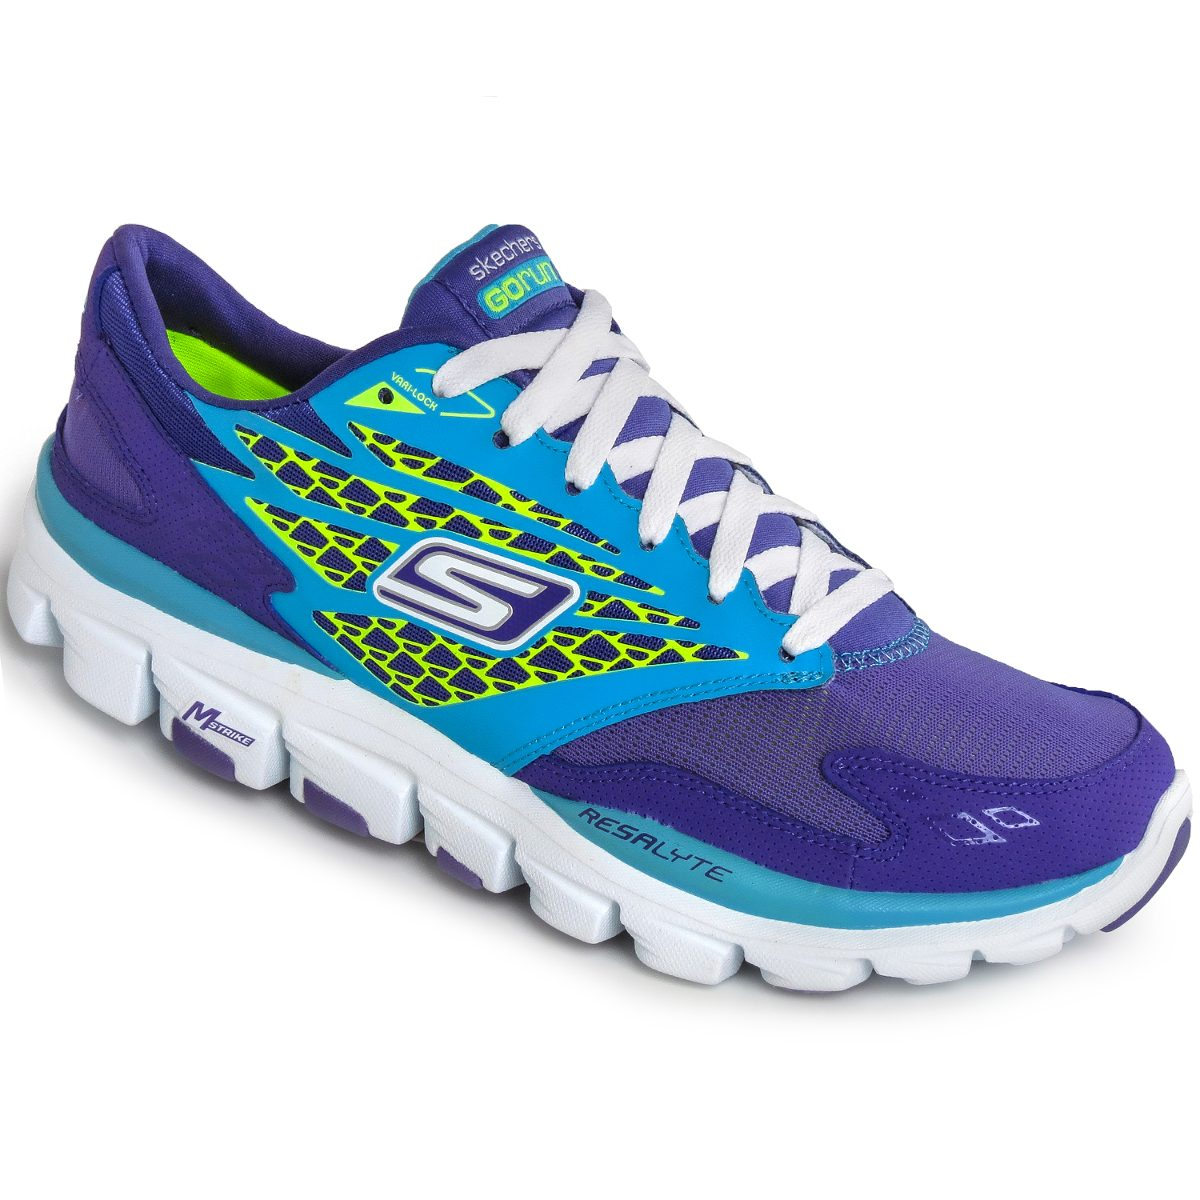 Zapatillas - Skechers Zapatillas de Running Skechers Go Run